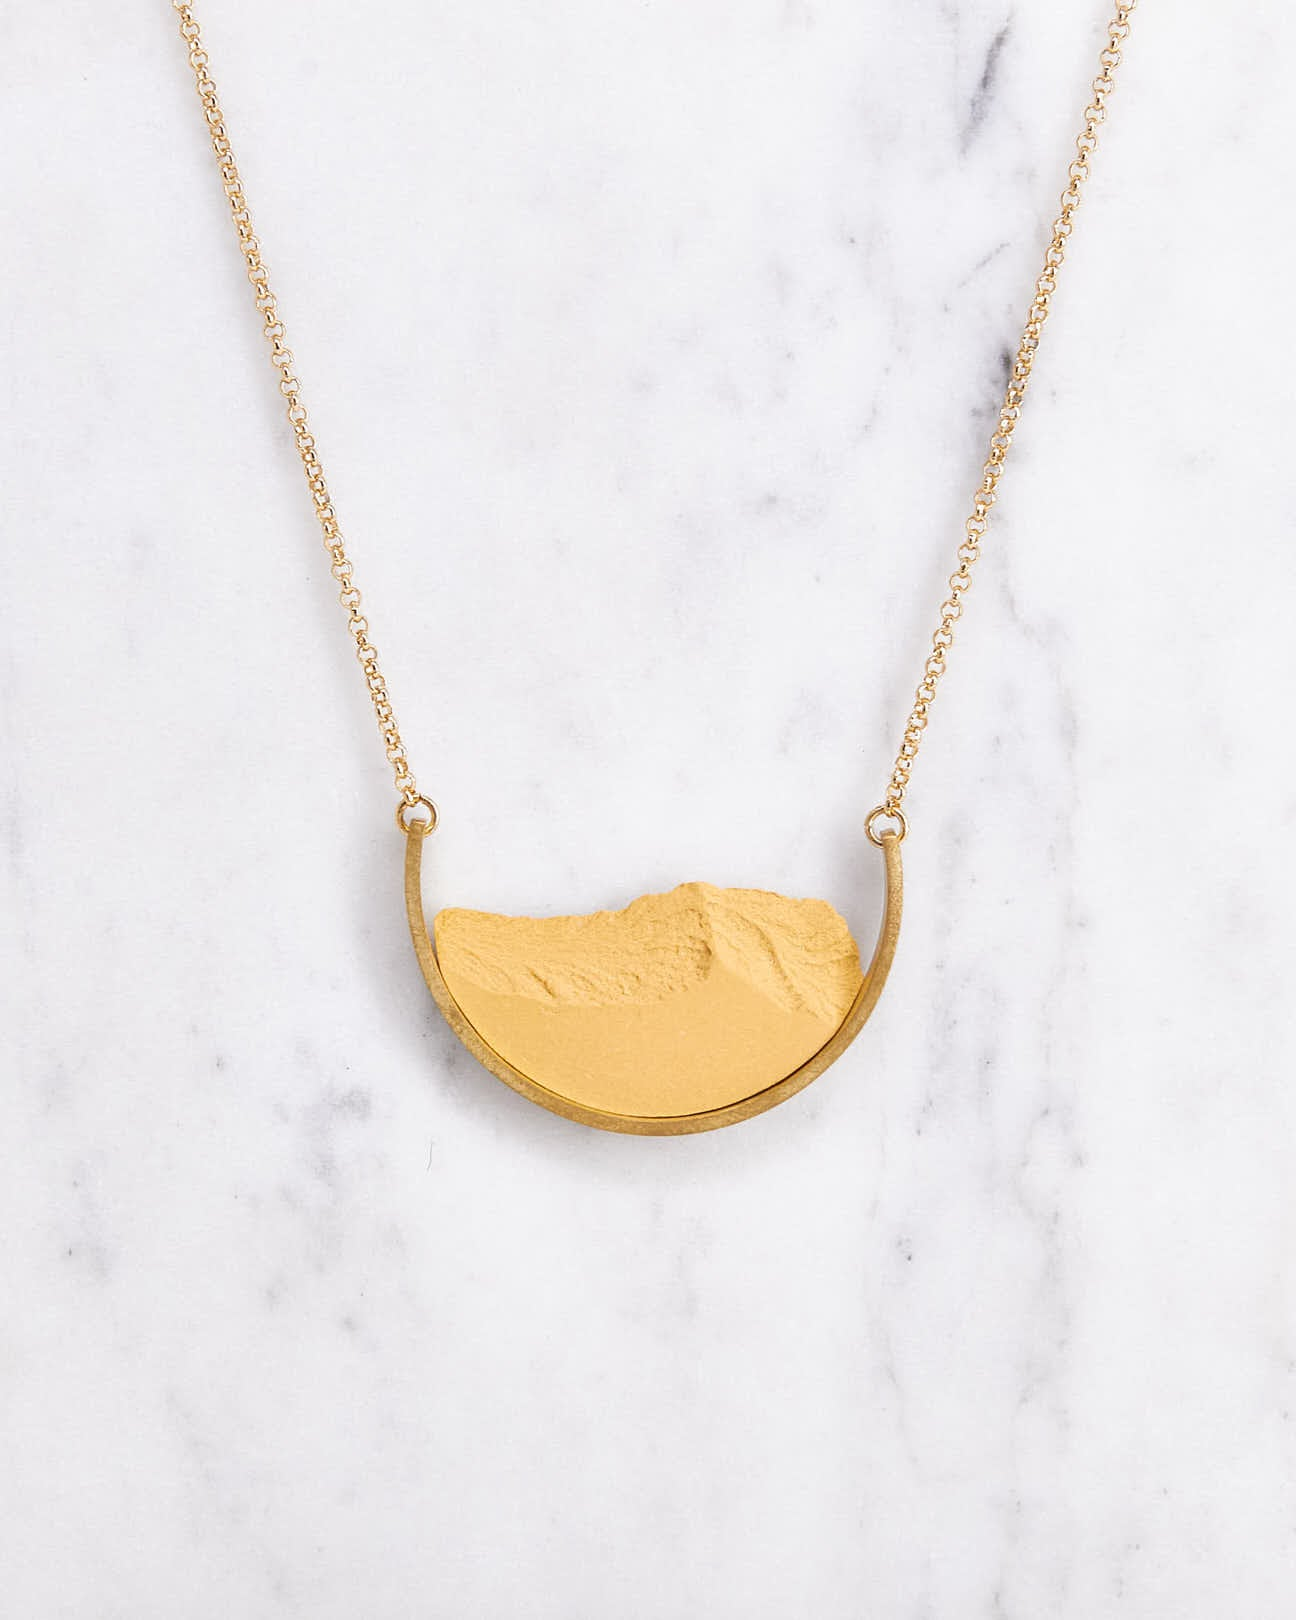 Necklace-dsnu-smallcurve-gold-mustard-Nuovum-Localdesigners-Barcelona